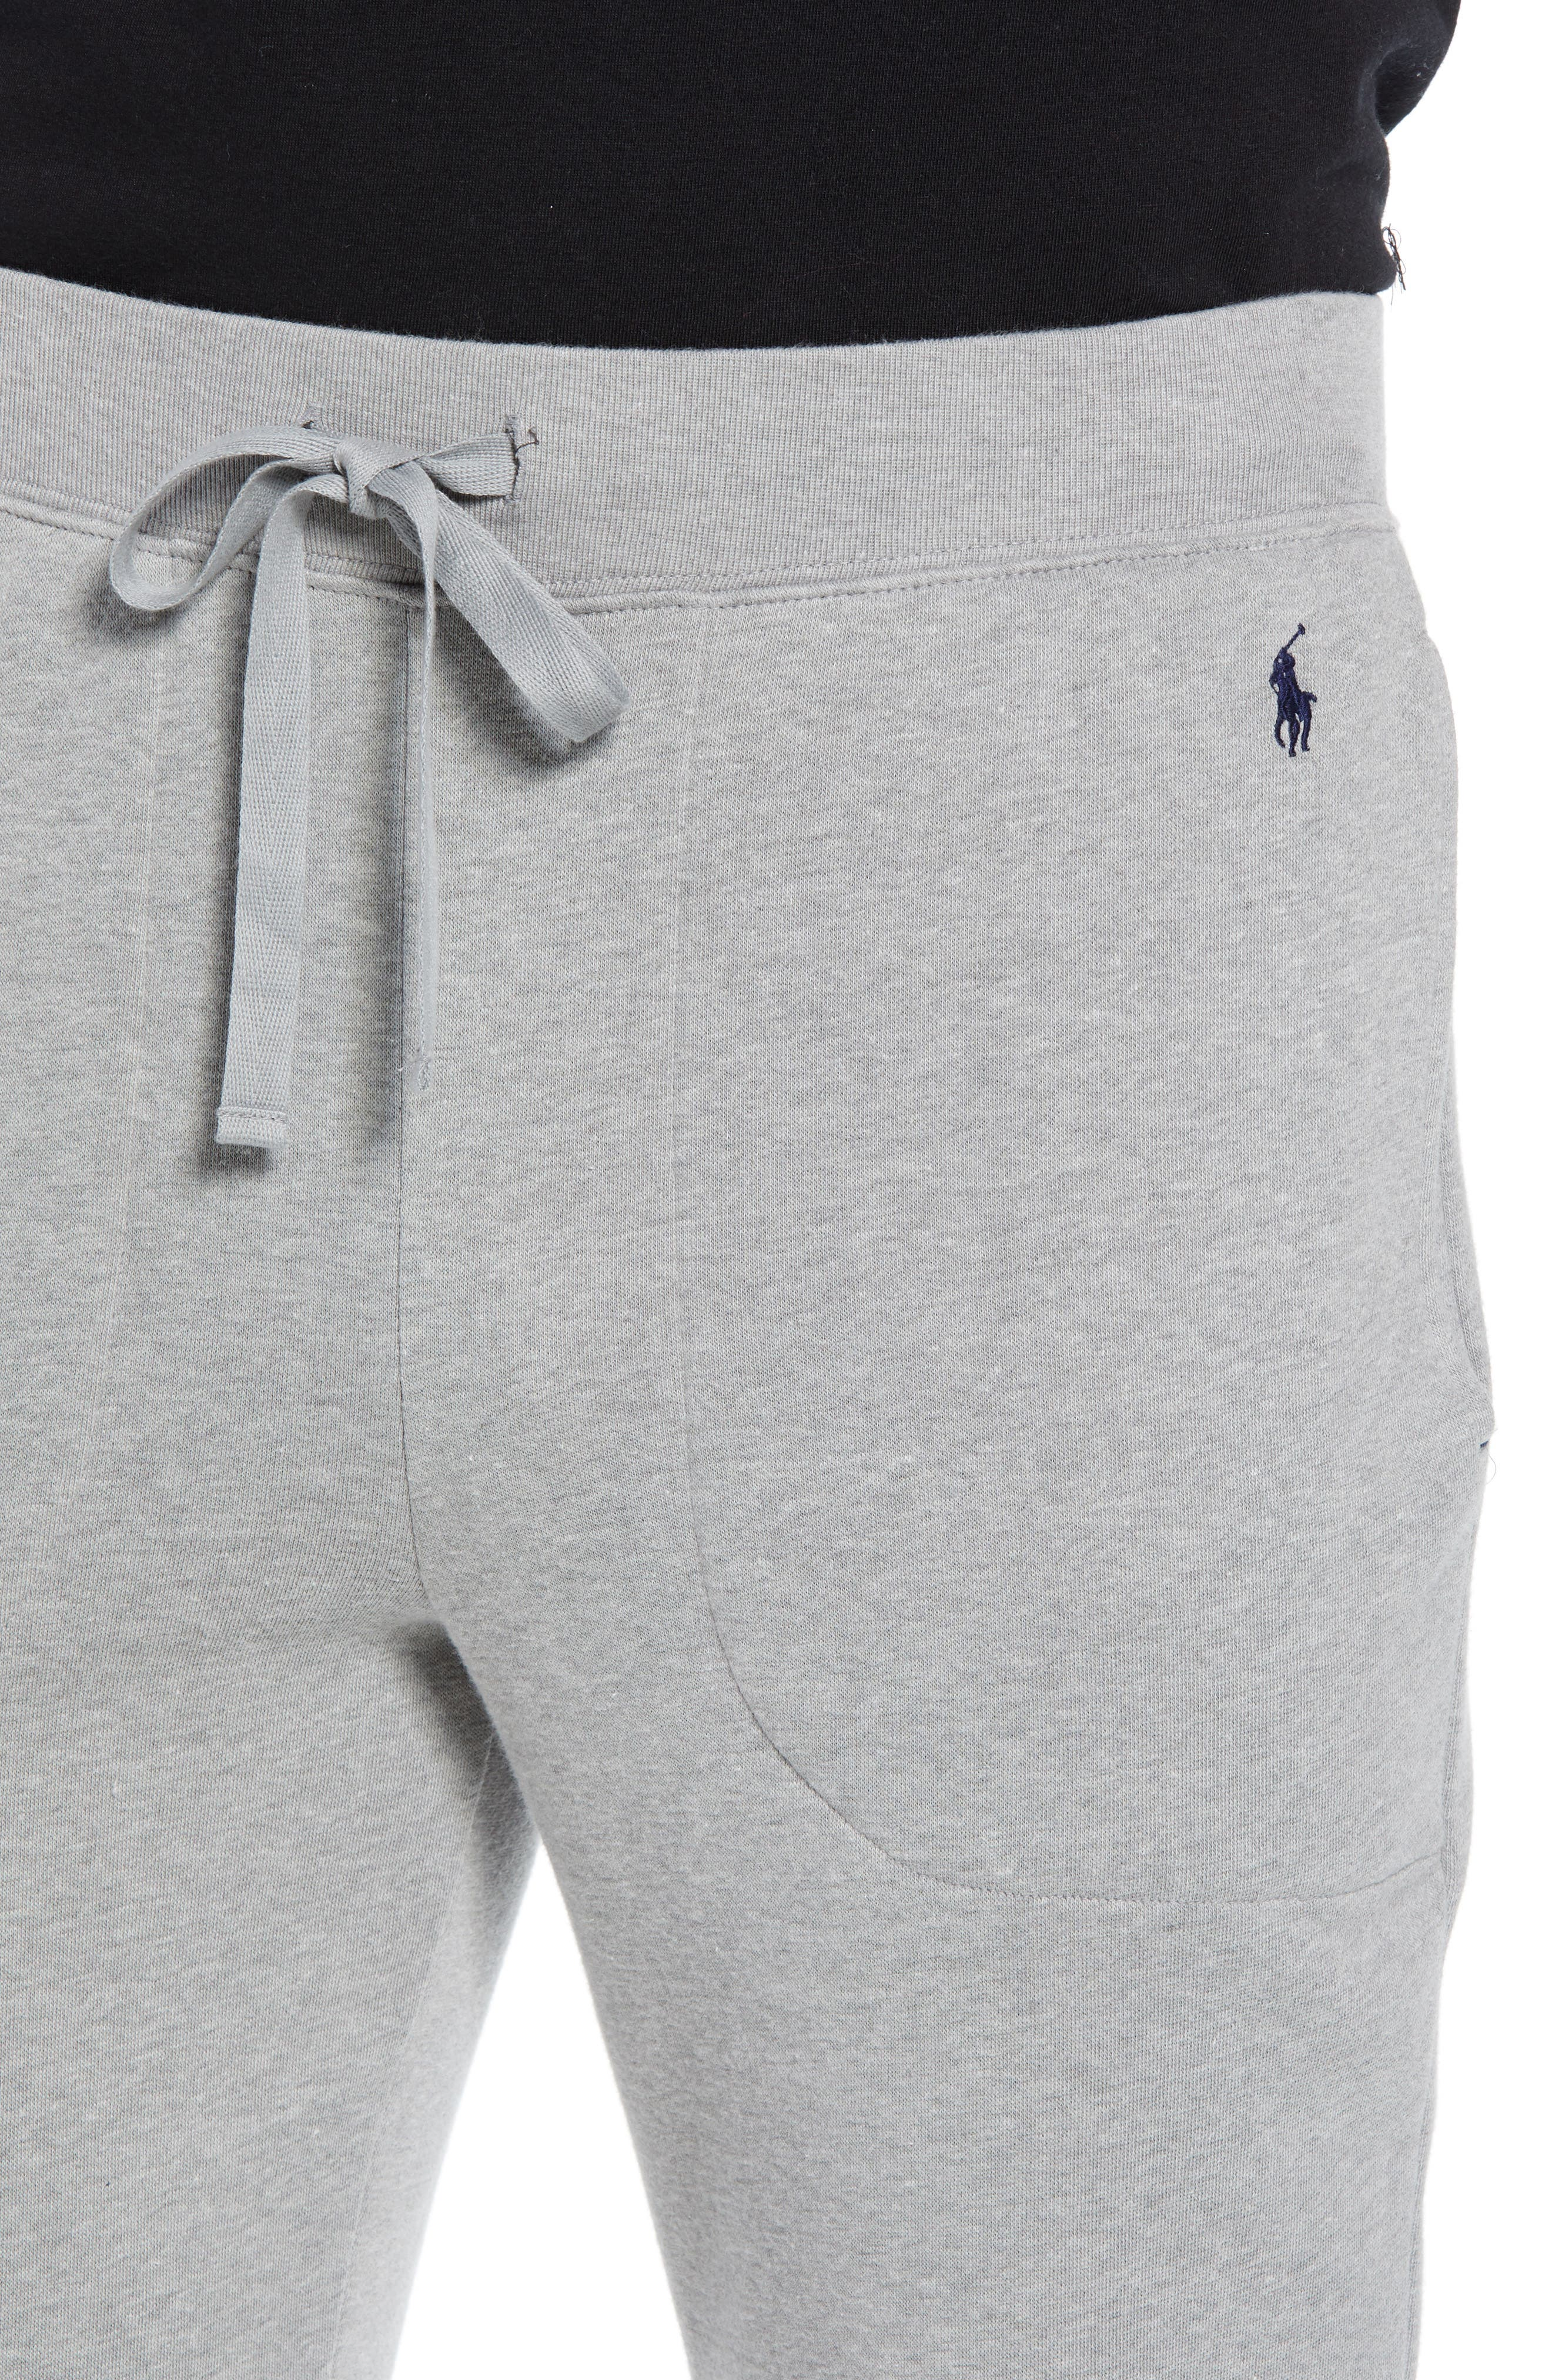 Brushed Jersey Cotton Blend Jogger Pants,                             Alternate thumbnail 4, color,                             ANDOVER HEATHER GREY